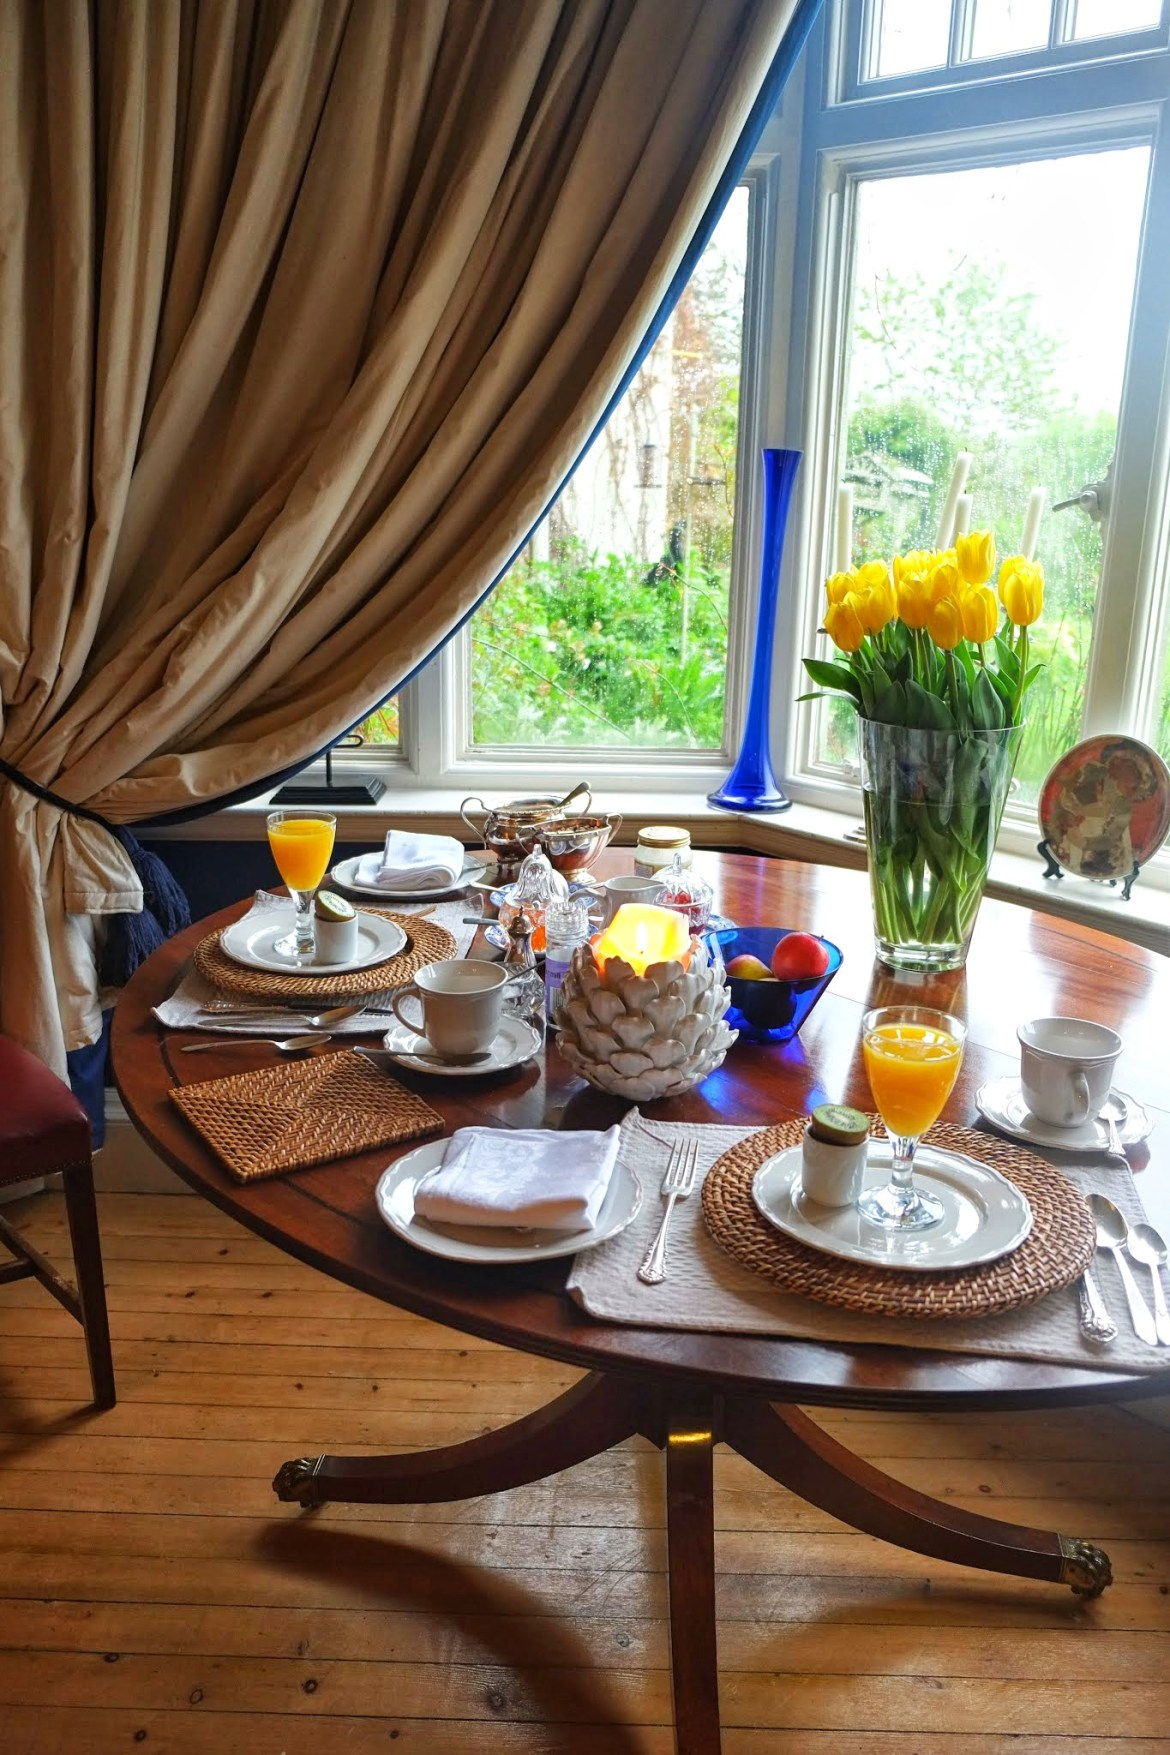 Breakfast at Fauhope house, st cuthberts way